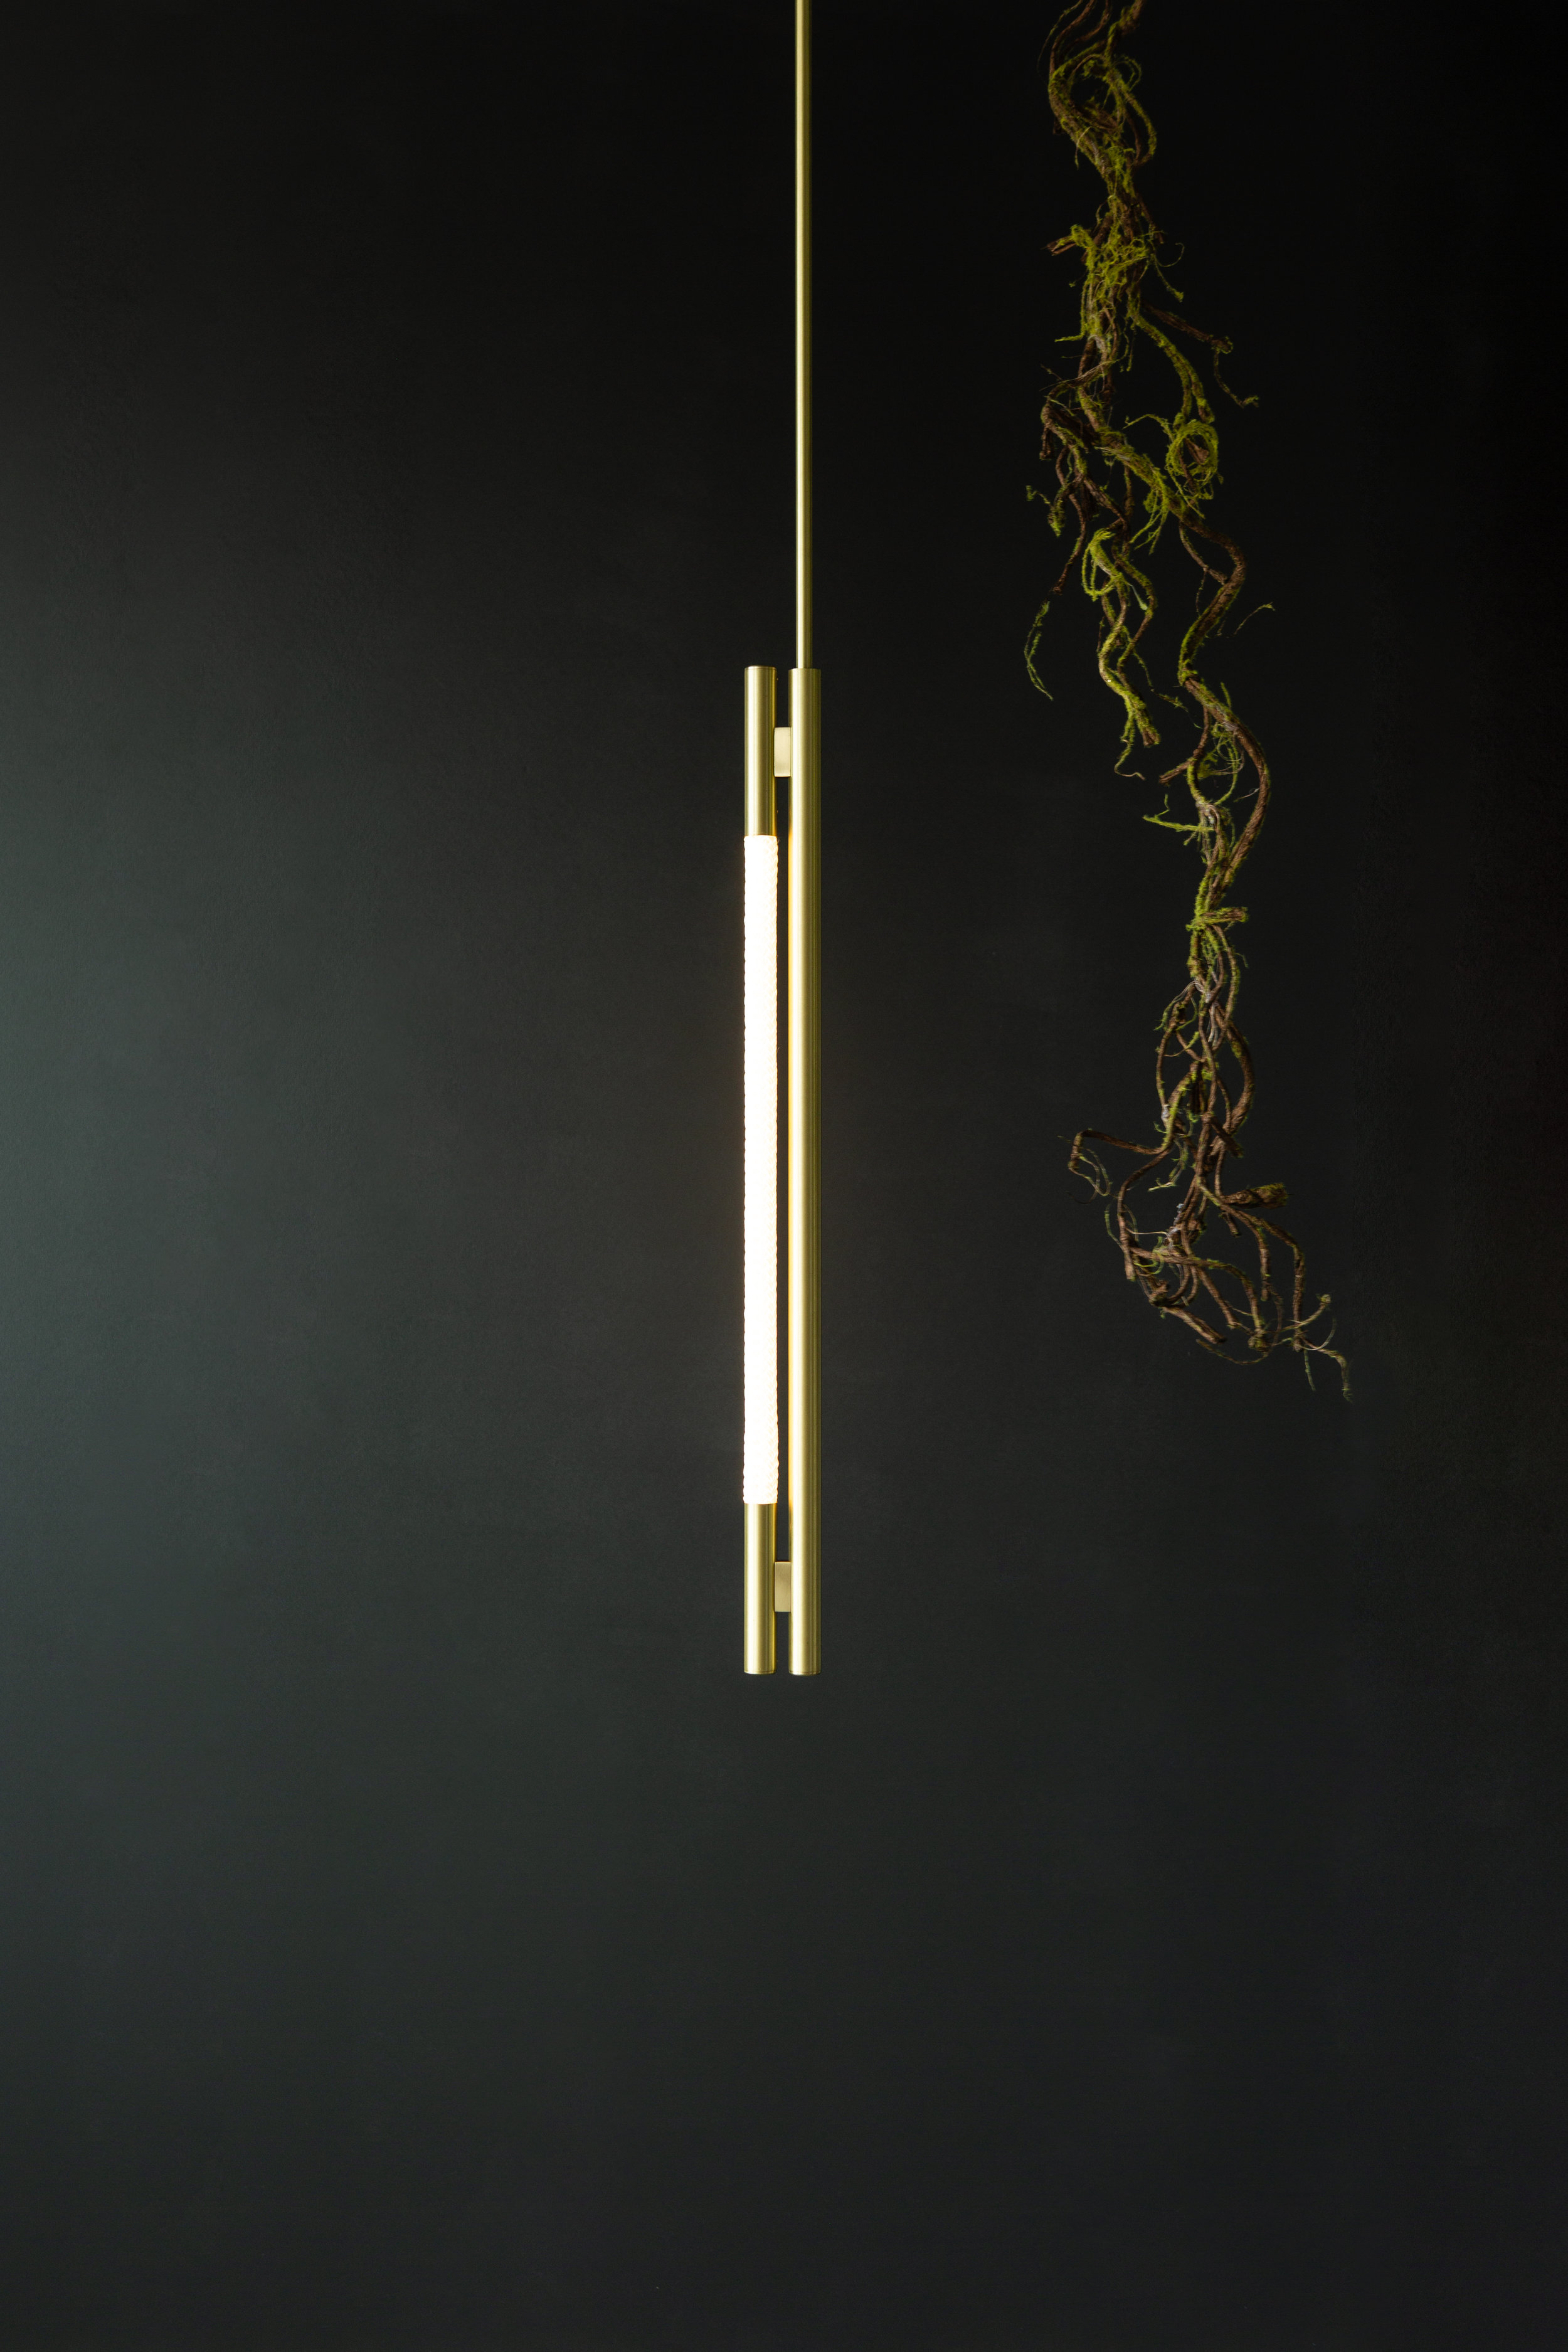 As pictured: 2.5' Leto Pendant in Satin Brass